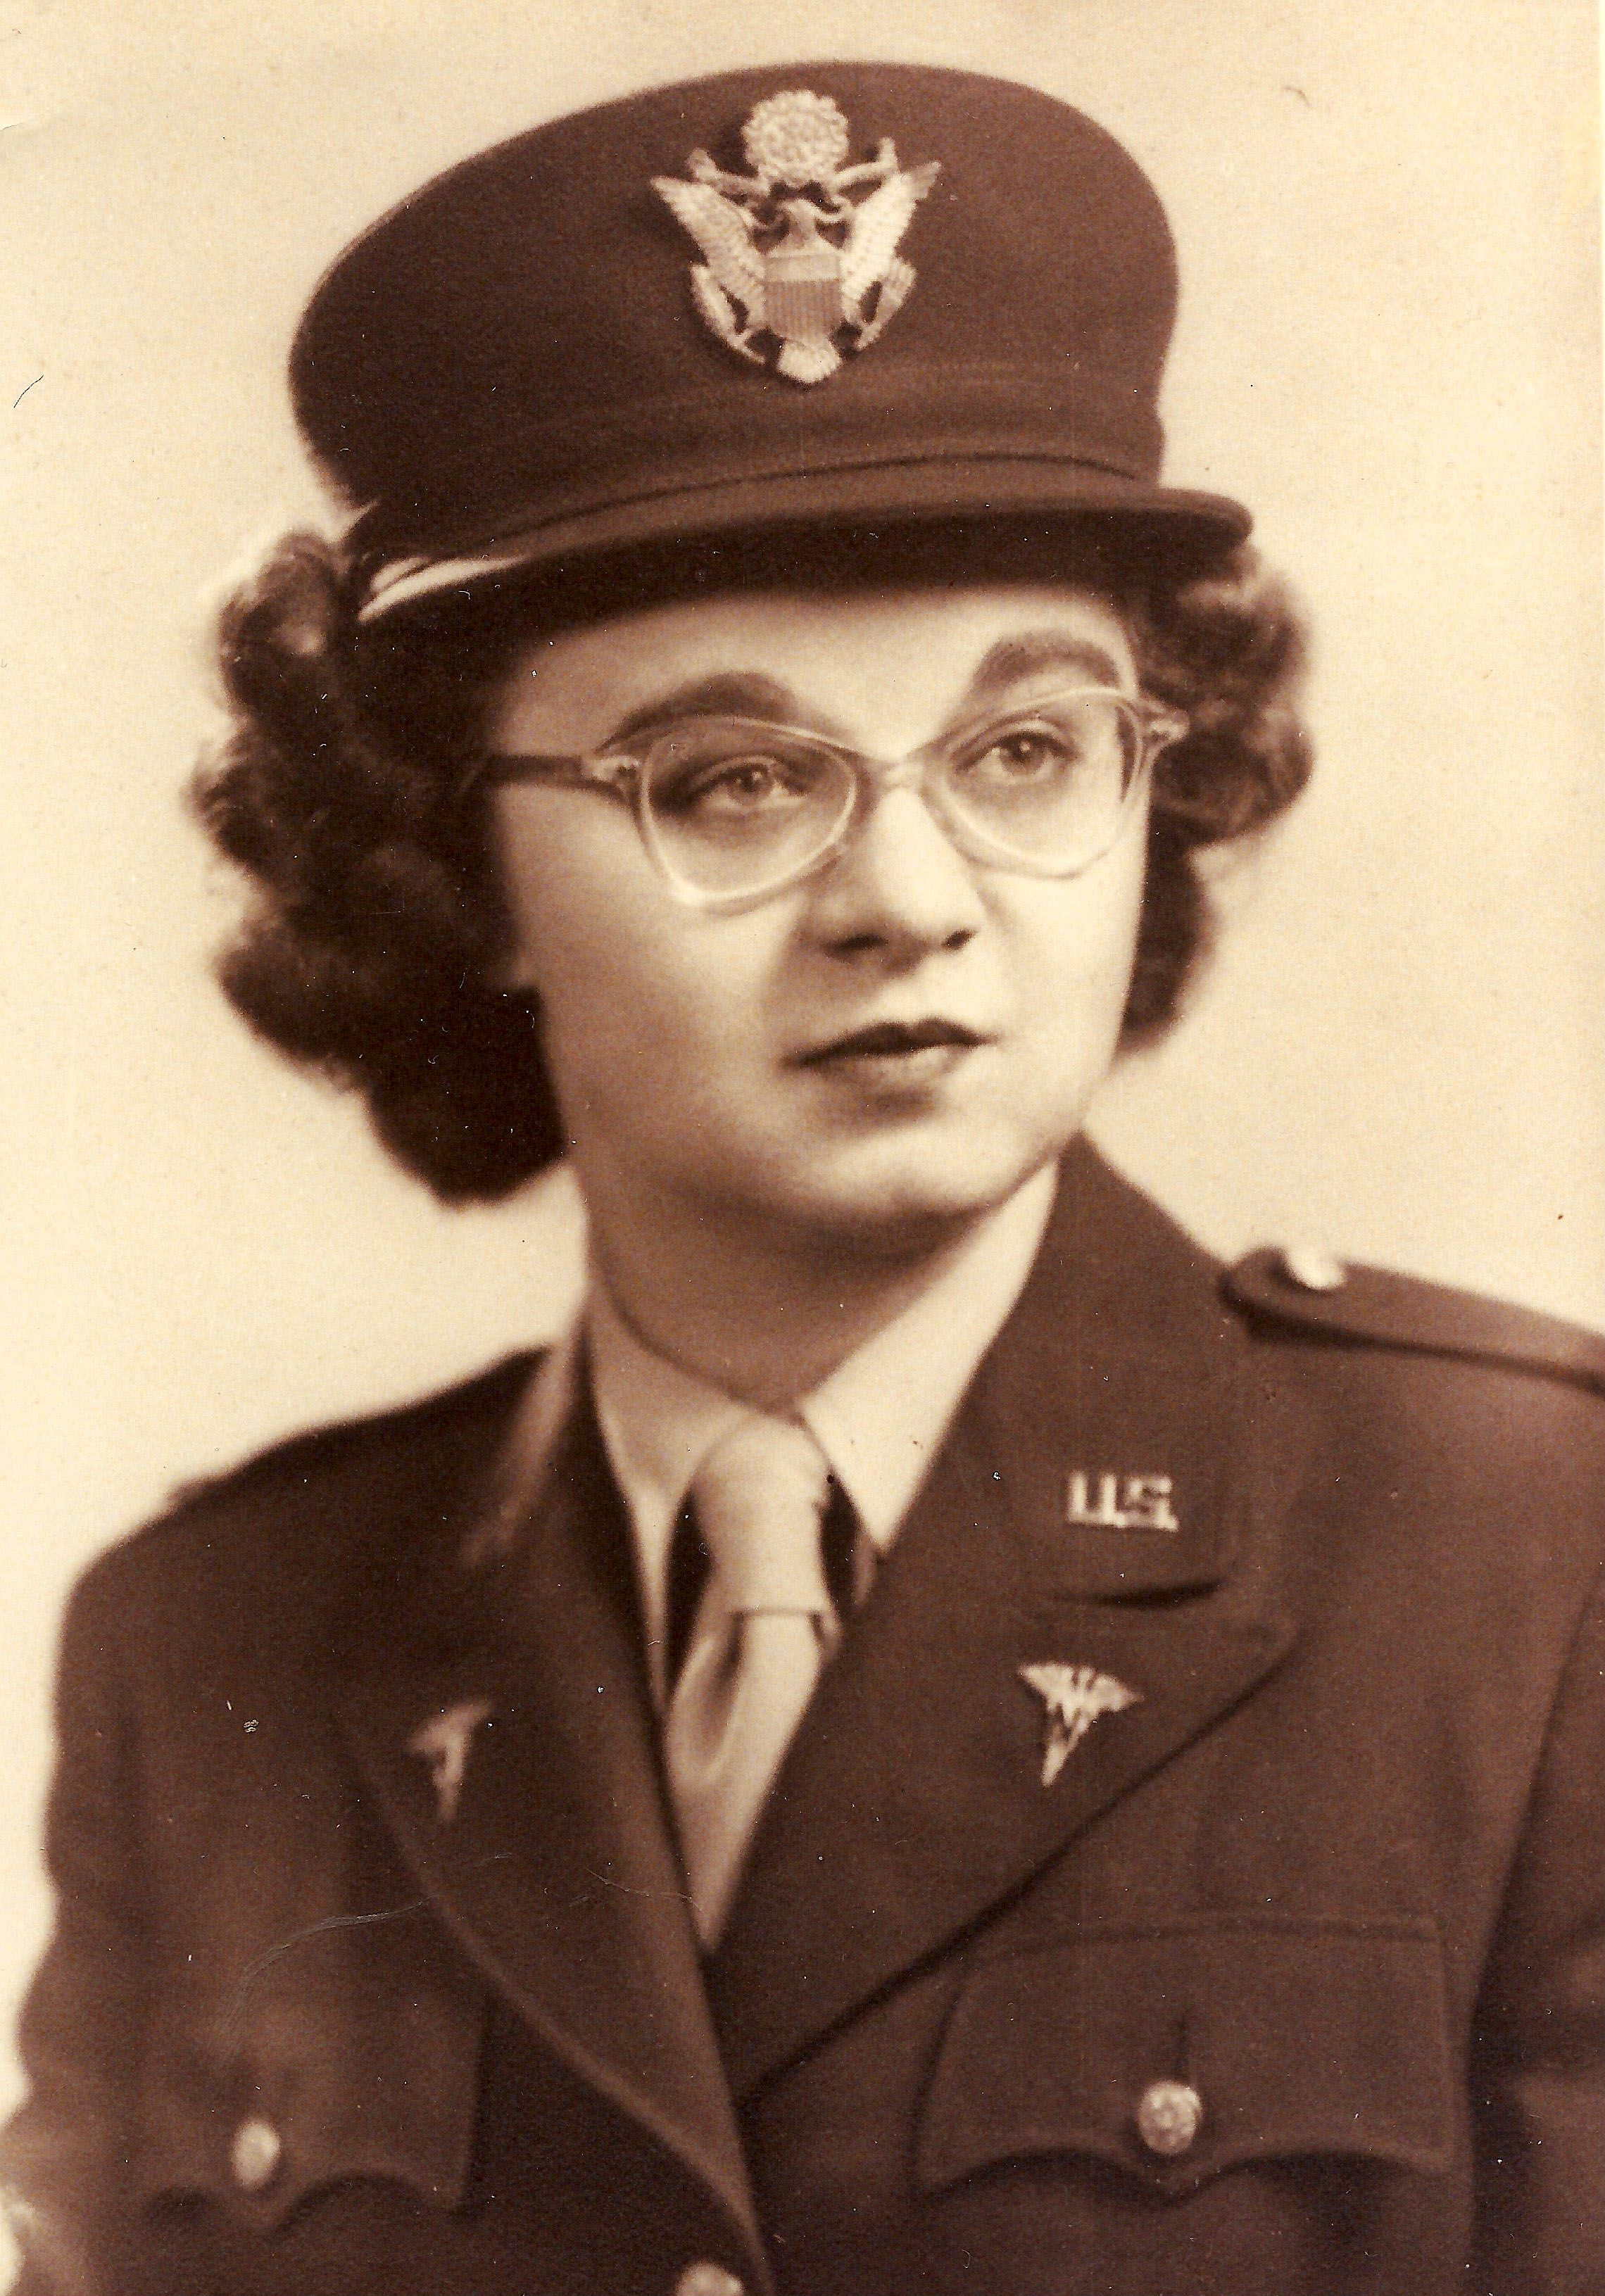 Mary Quesnel enlisted in the Army Nurse Corps in 1944